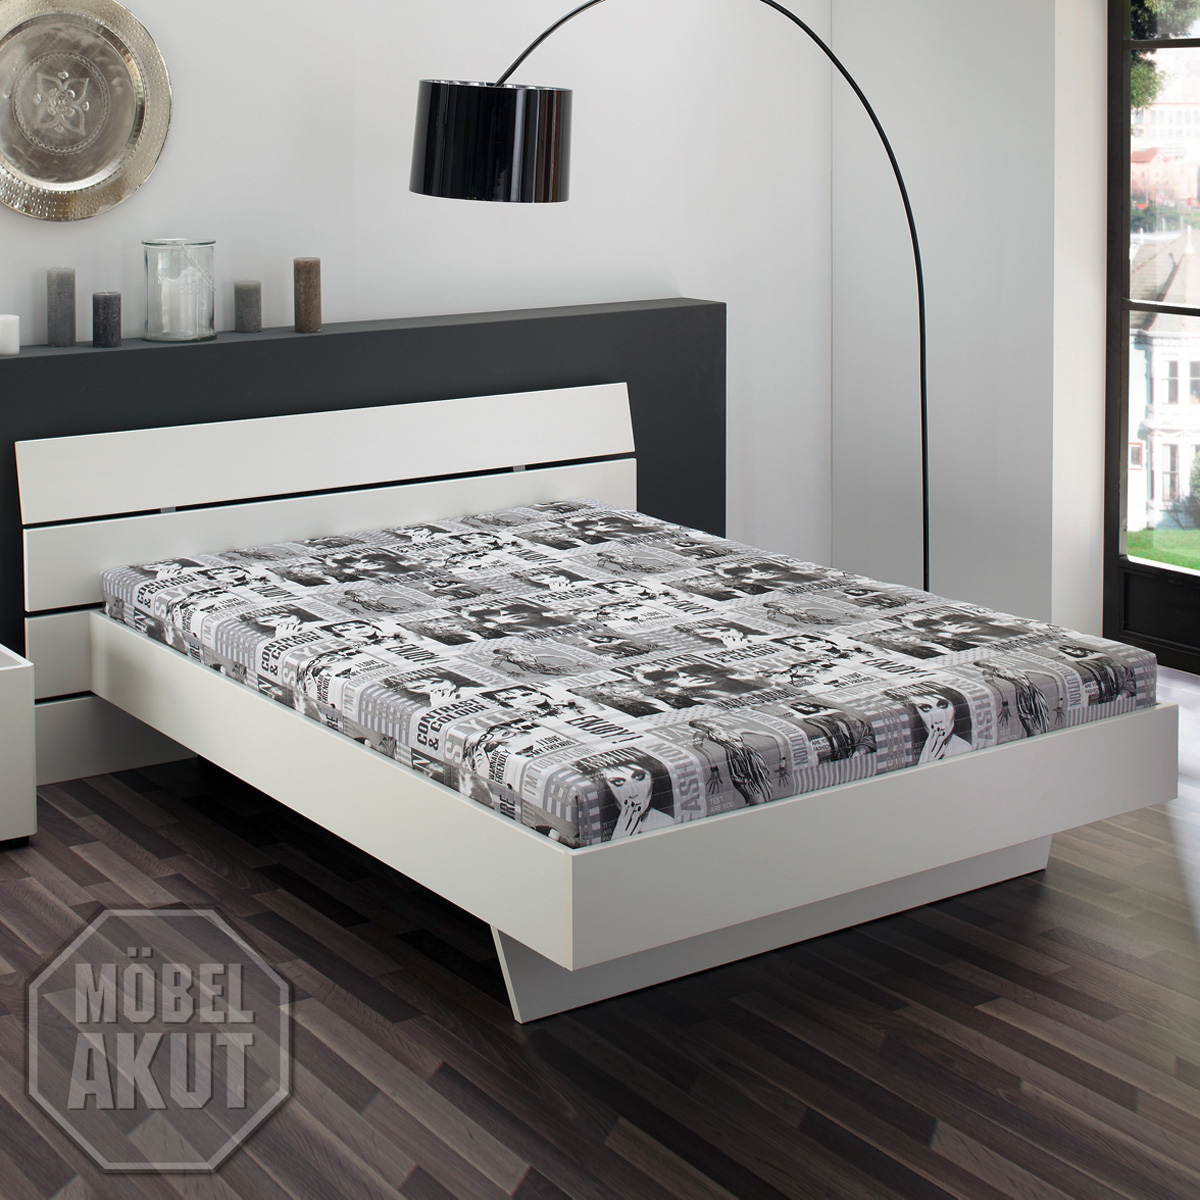 futonbett flyer bett einzelbett in wei inkl rollrost und. Black Bedroom Furniture Sets. Home Design Ideas